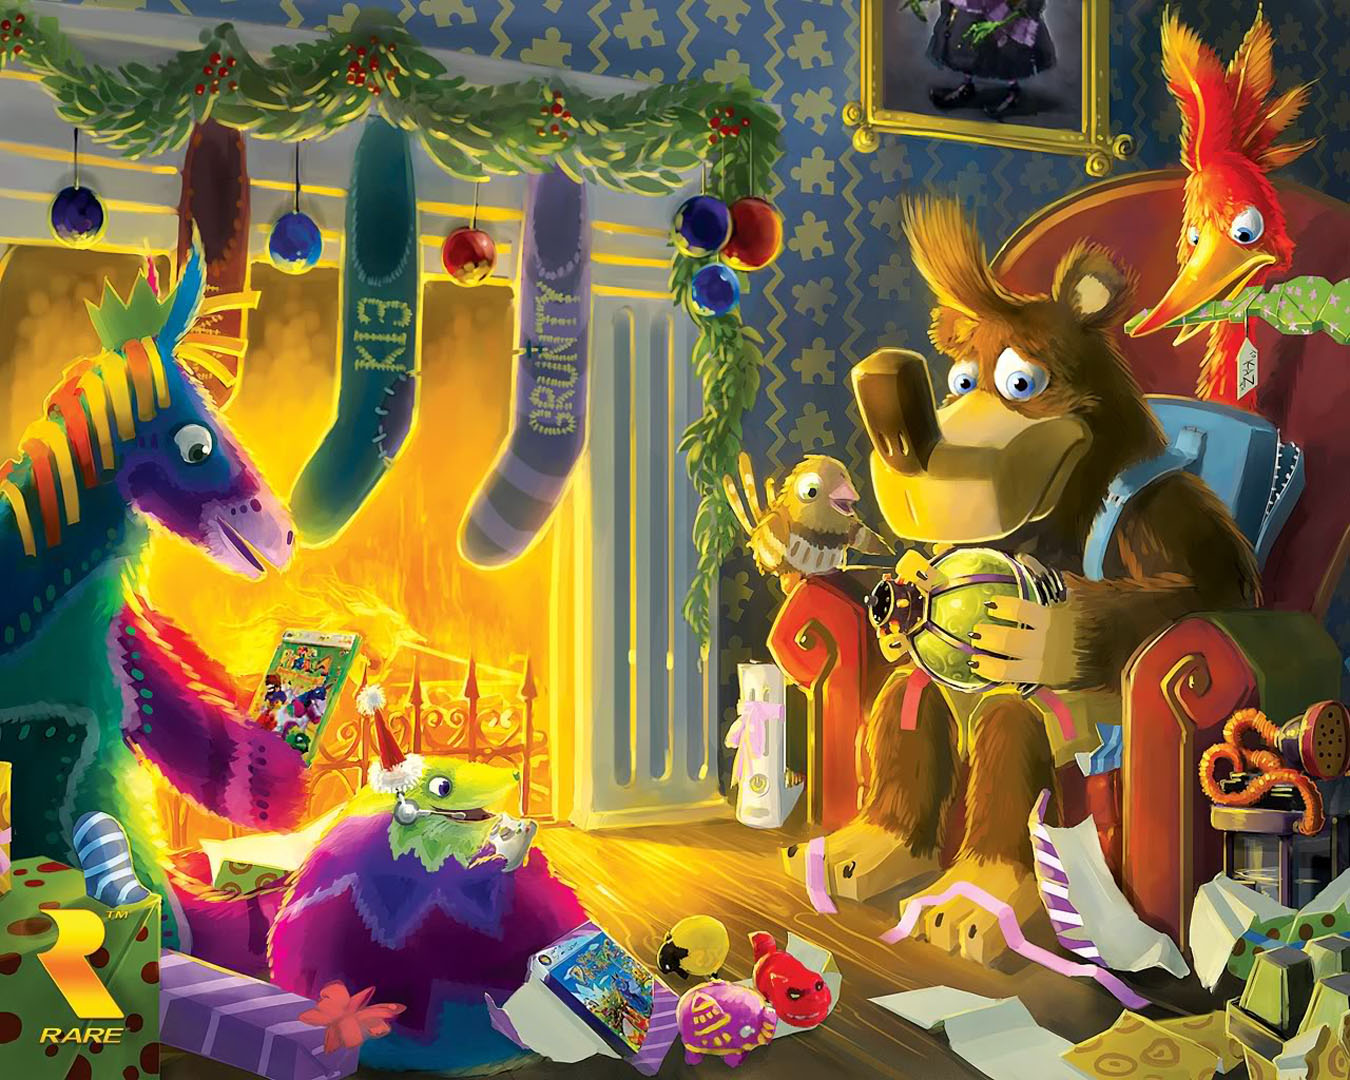 Christmas By The Fire - Action Games Wallpaper Image featuring Banjo